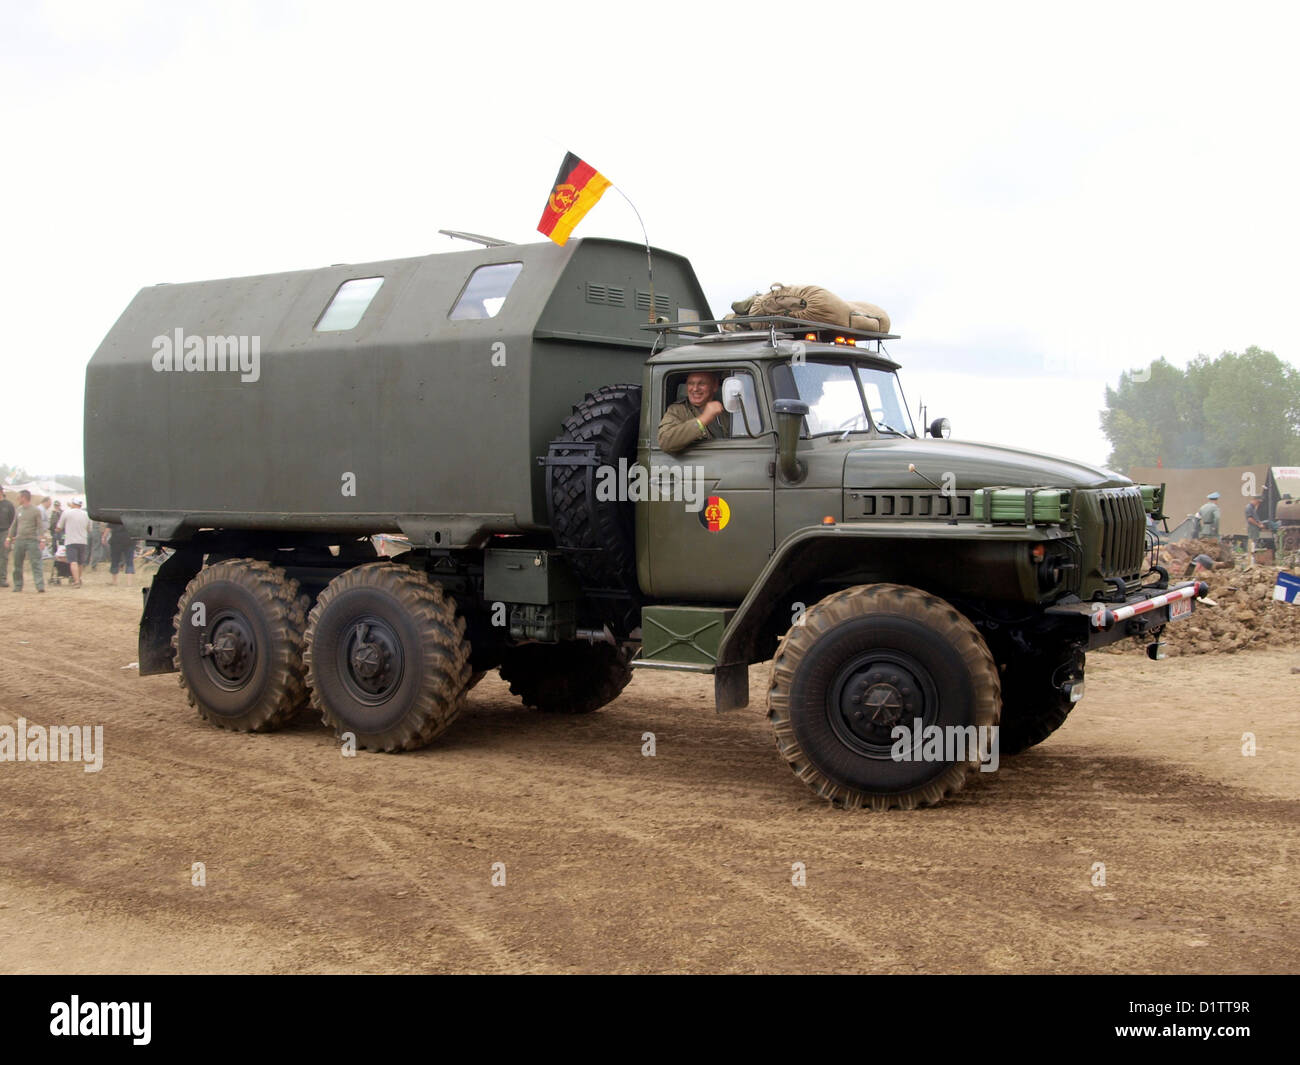 f2521a16f4465c Zil 131 Mto At Stock Photos   Zil 131 Mto At Stock Images - Alamy